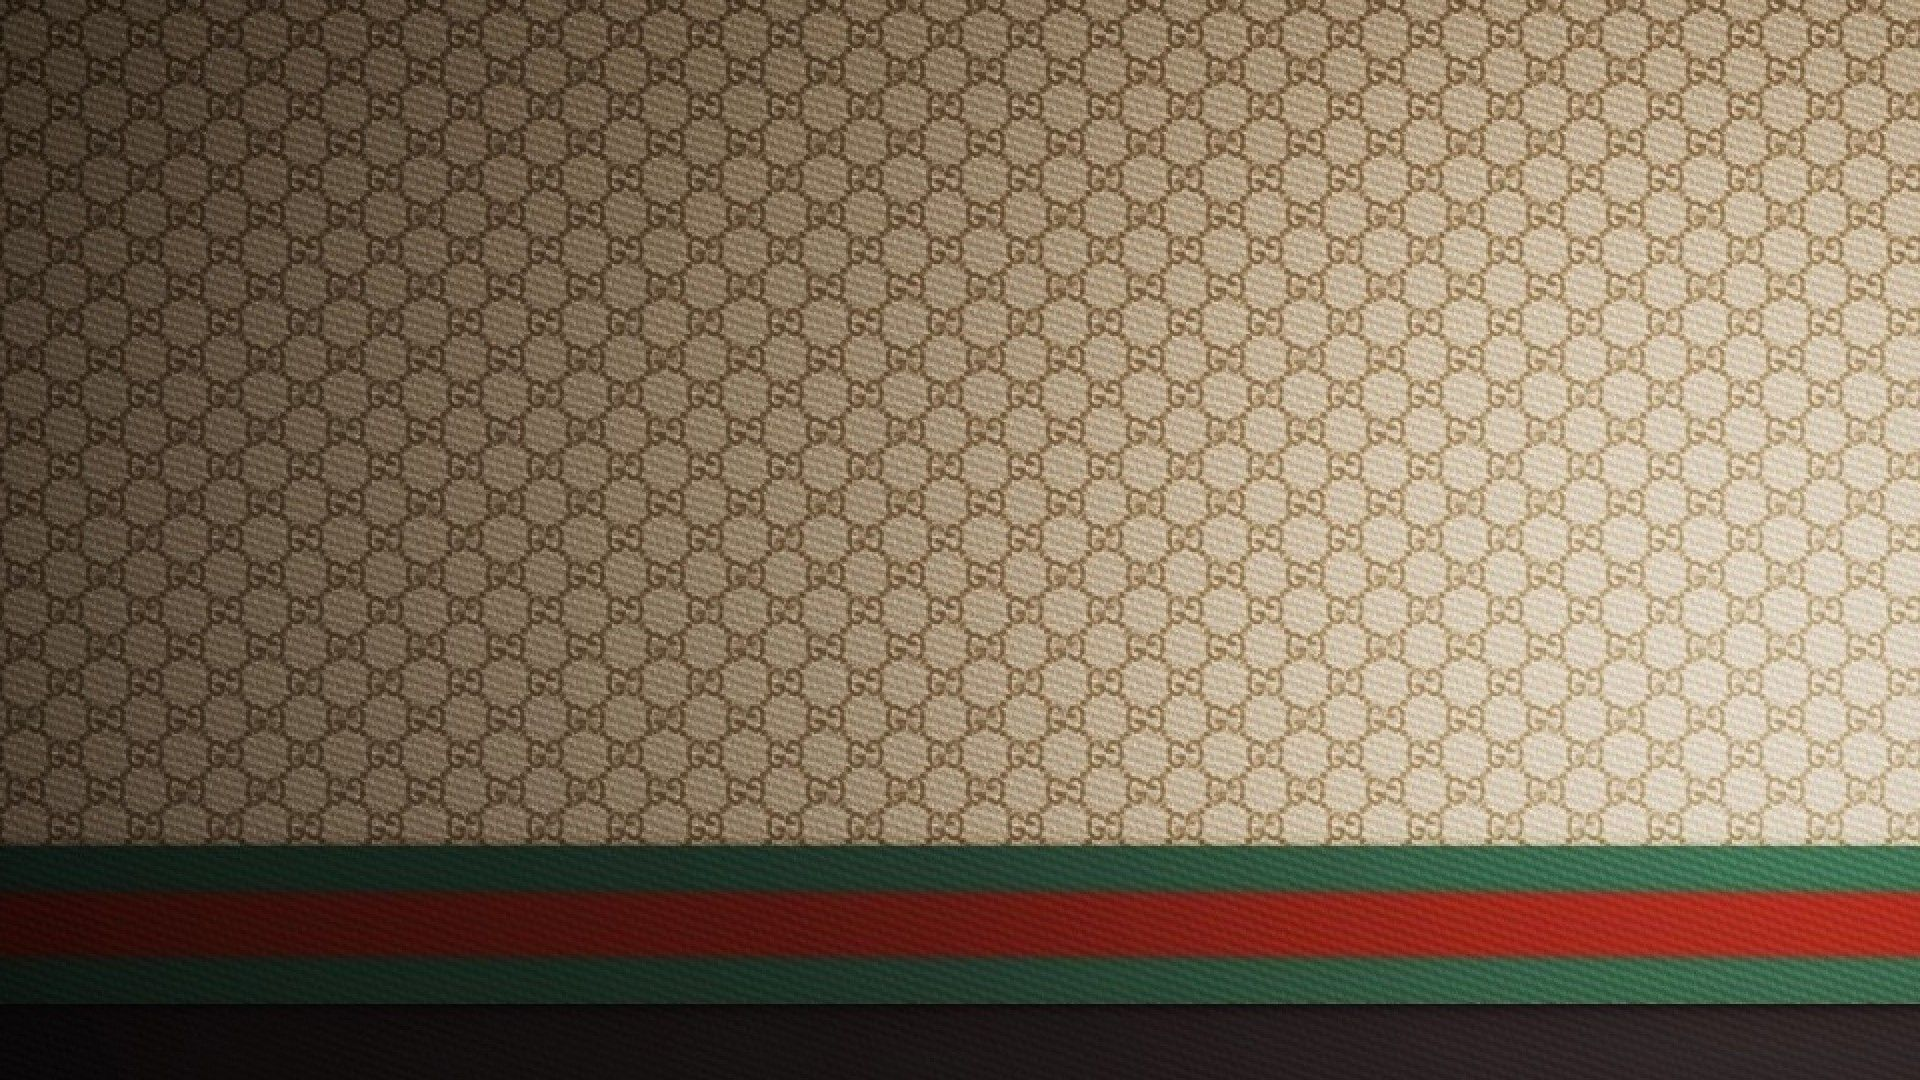 Gucci Pattern Wallpapers Top Free Gucci Pattern Backgrounds Wallpaperaccess Style # 523697 3ga35 9764 style: gucci pattern wallpapers top free